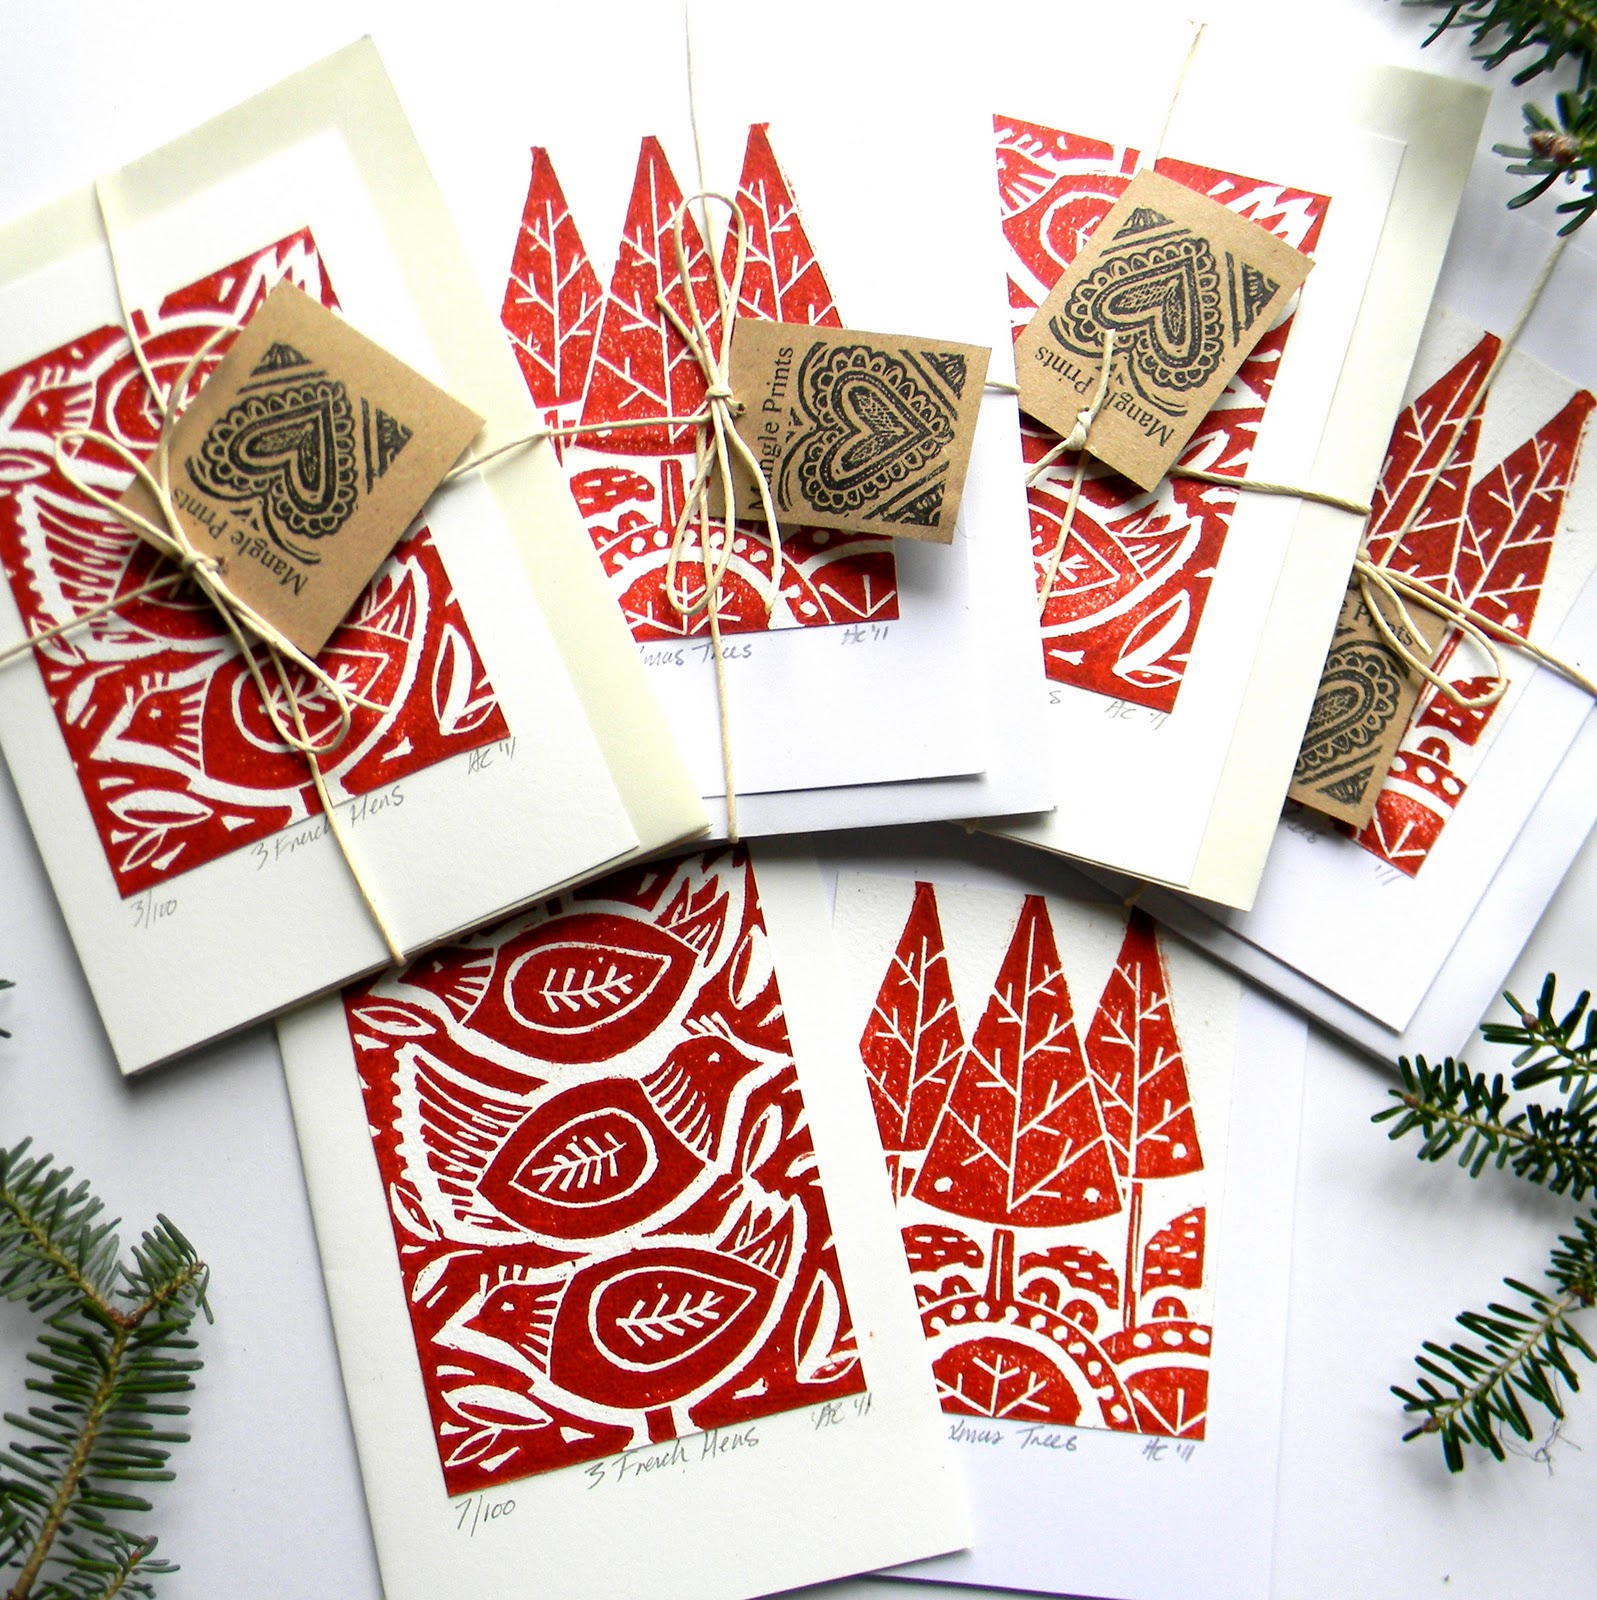 Mangle Prints: Christmas Cards and Heat!